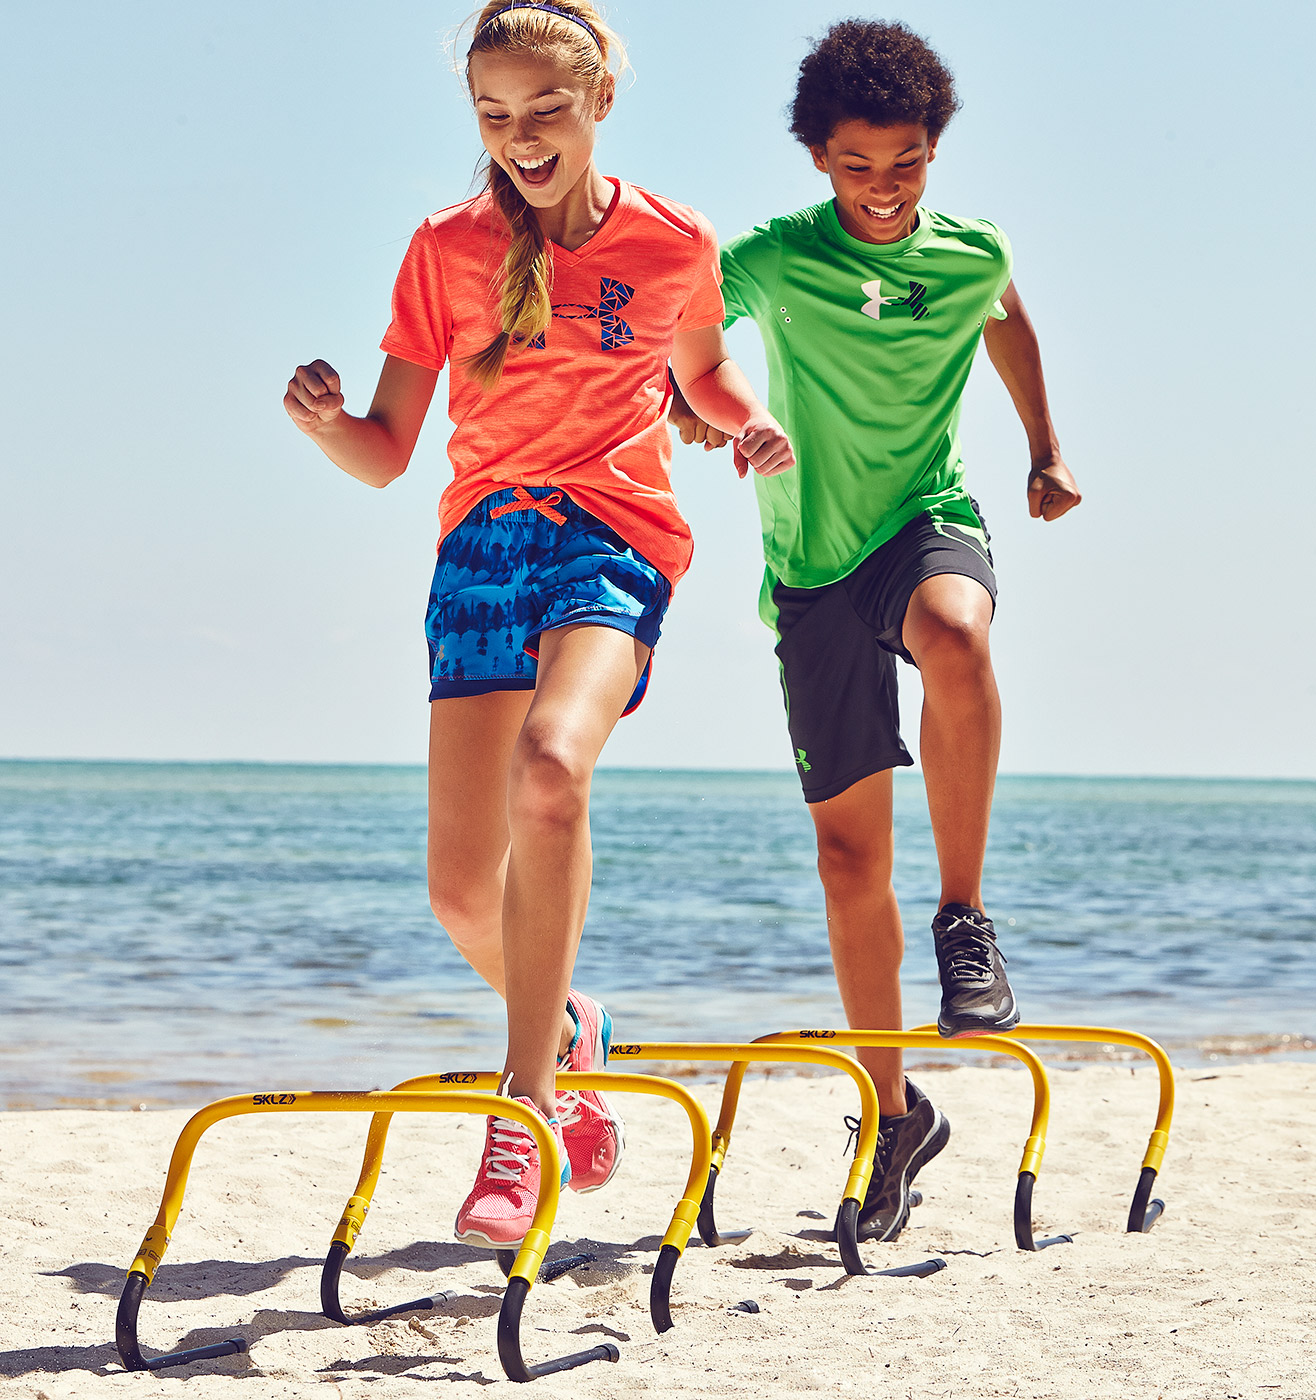 belk-kids-fitness-beach-crop